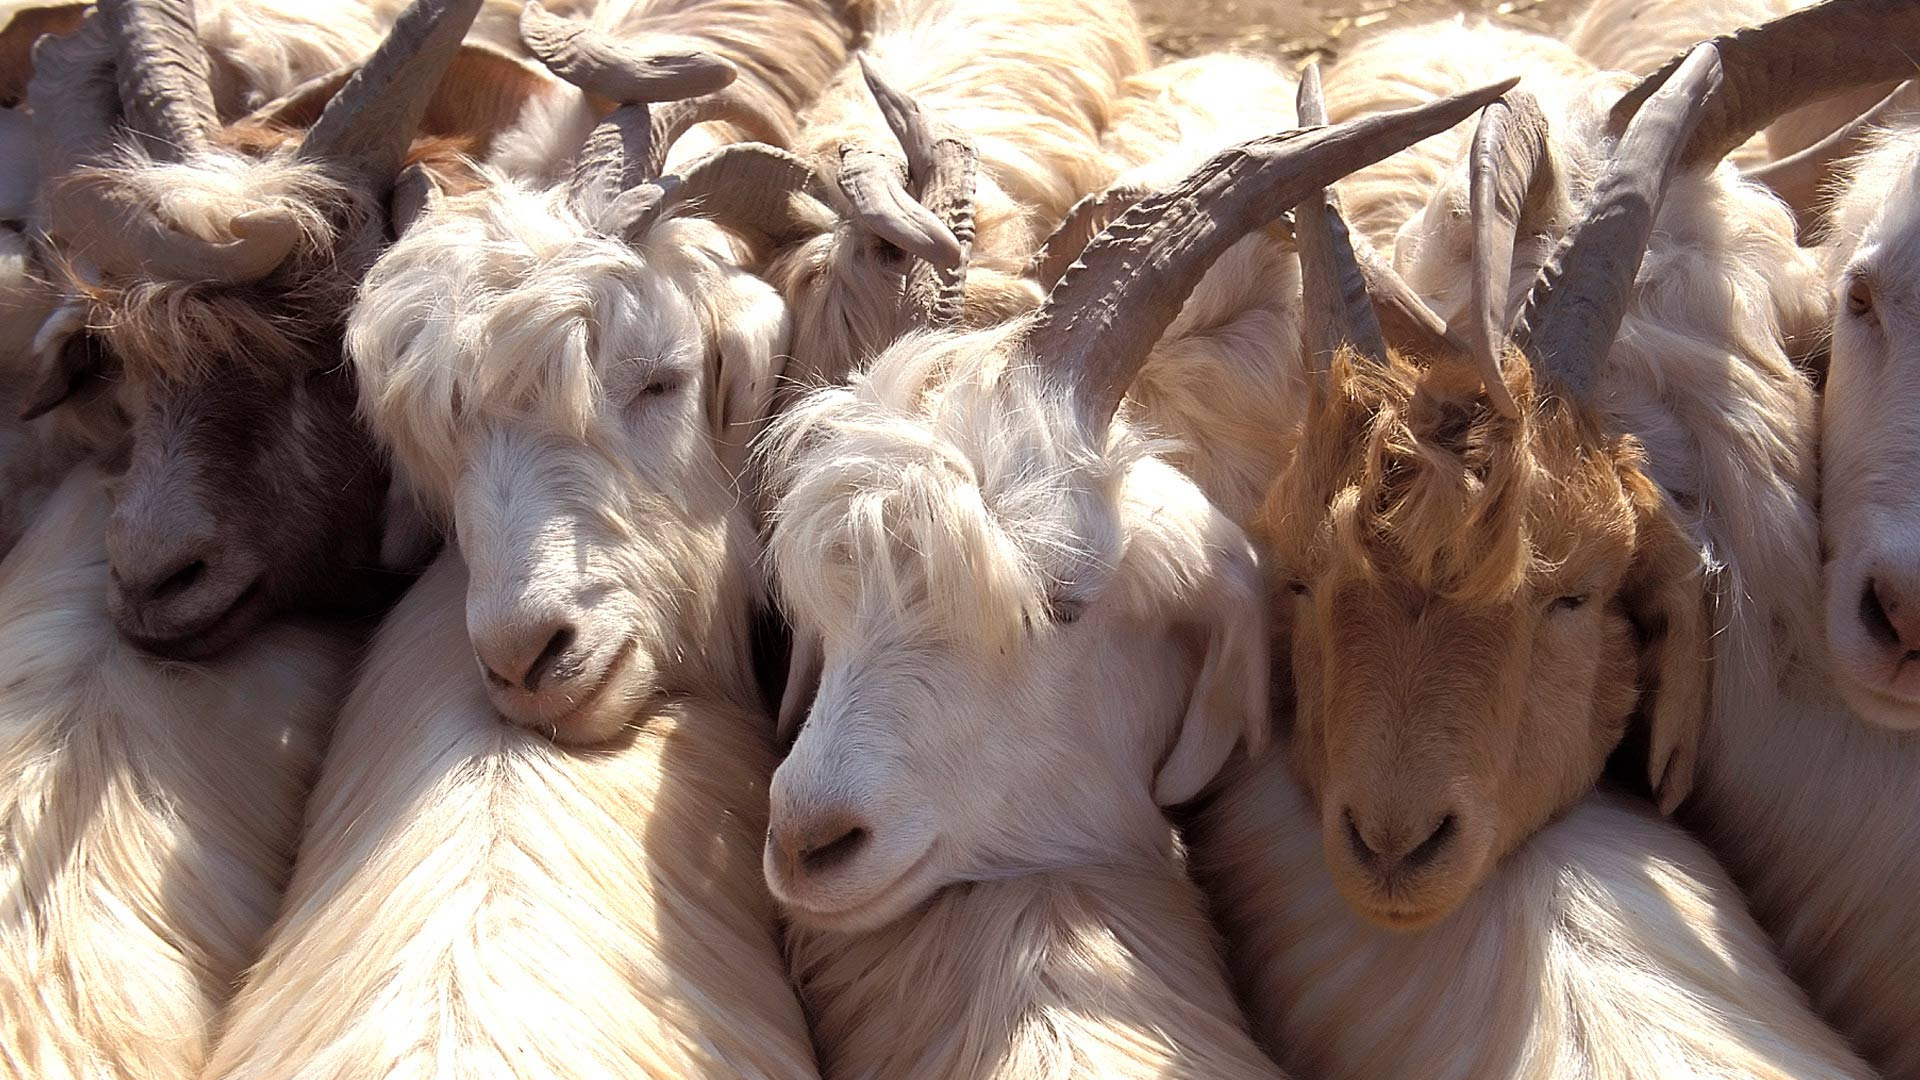 Goats for sale at the livestock market of the Yekshenba Bazaar (Sunday Bazaar), Kashgar, Xinjiang, China